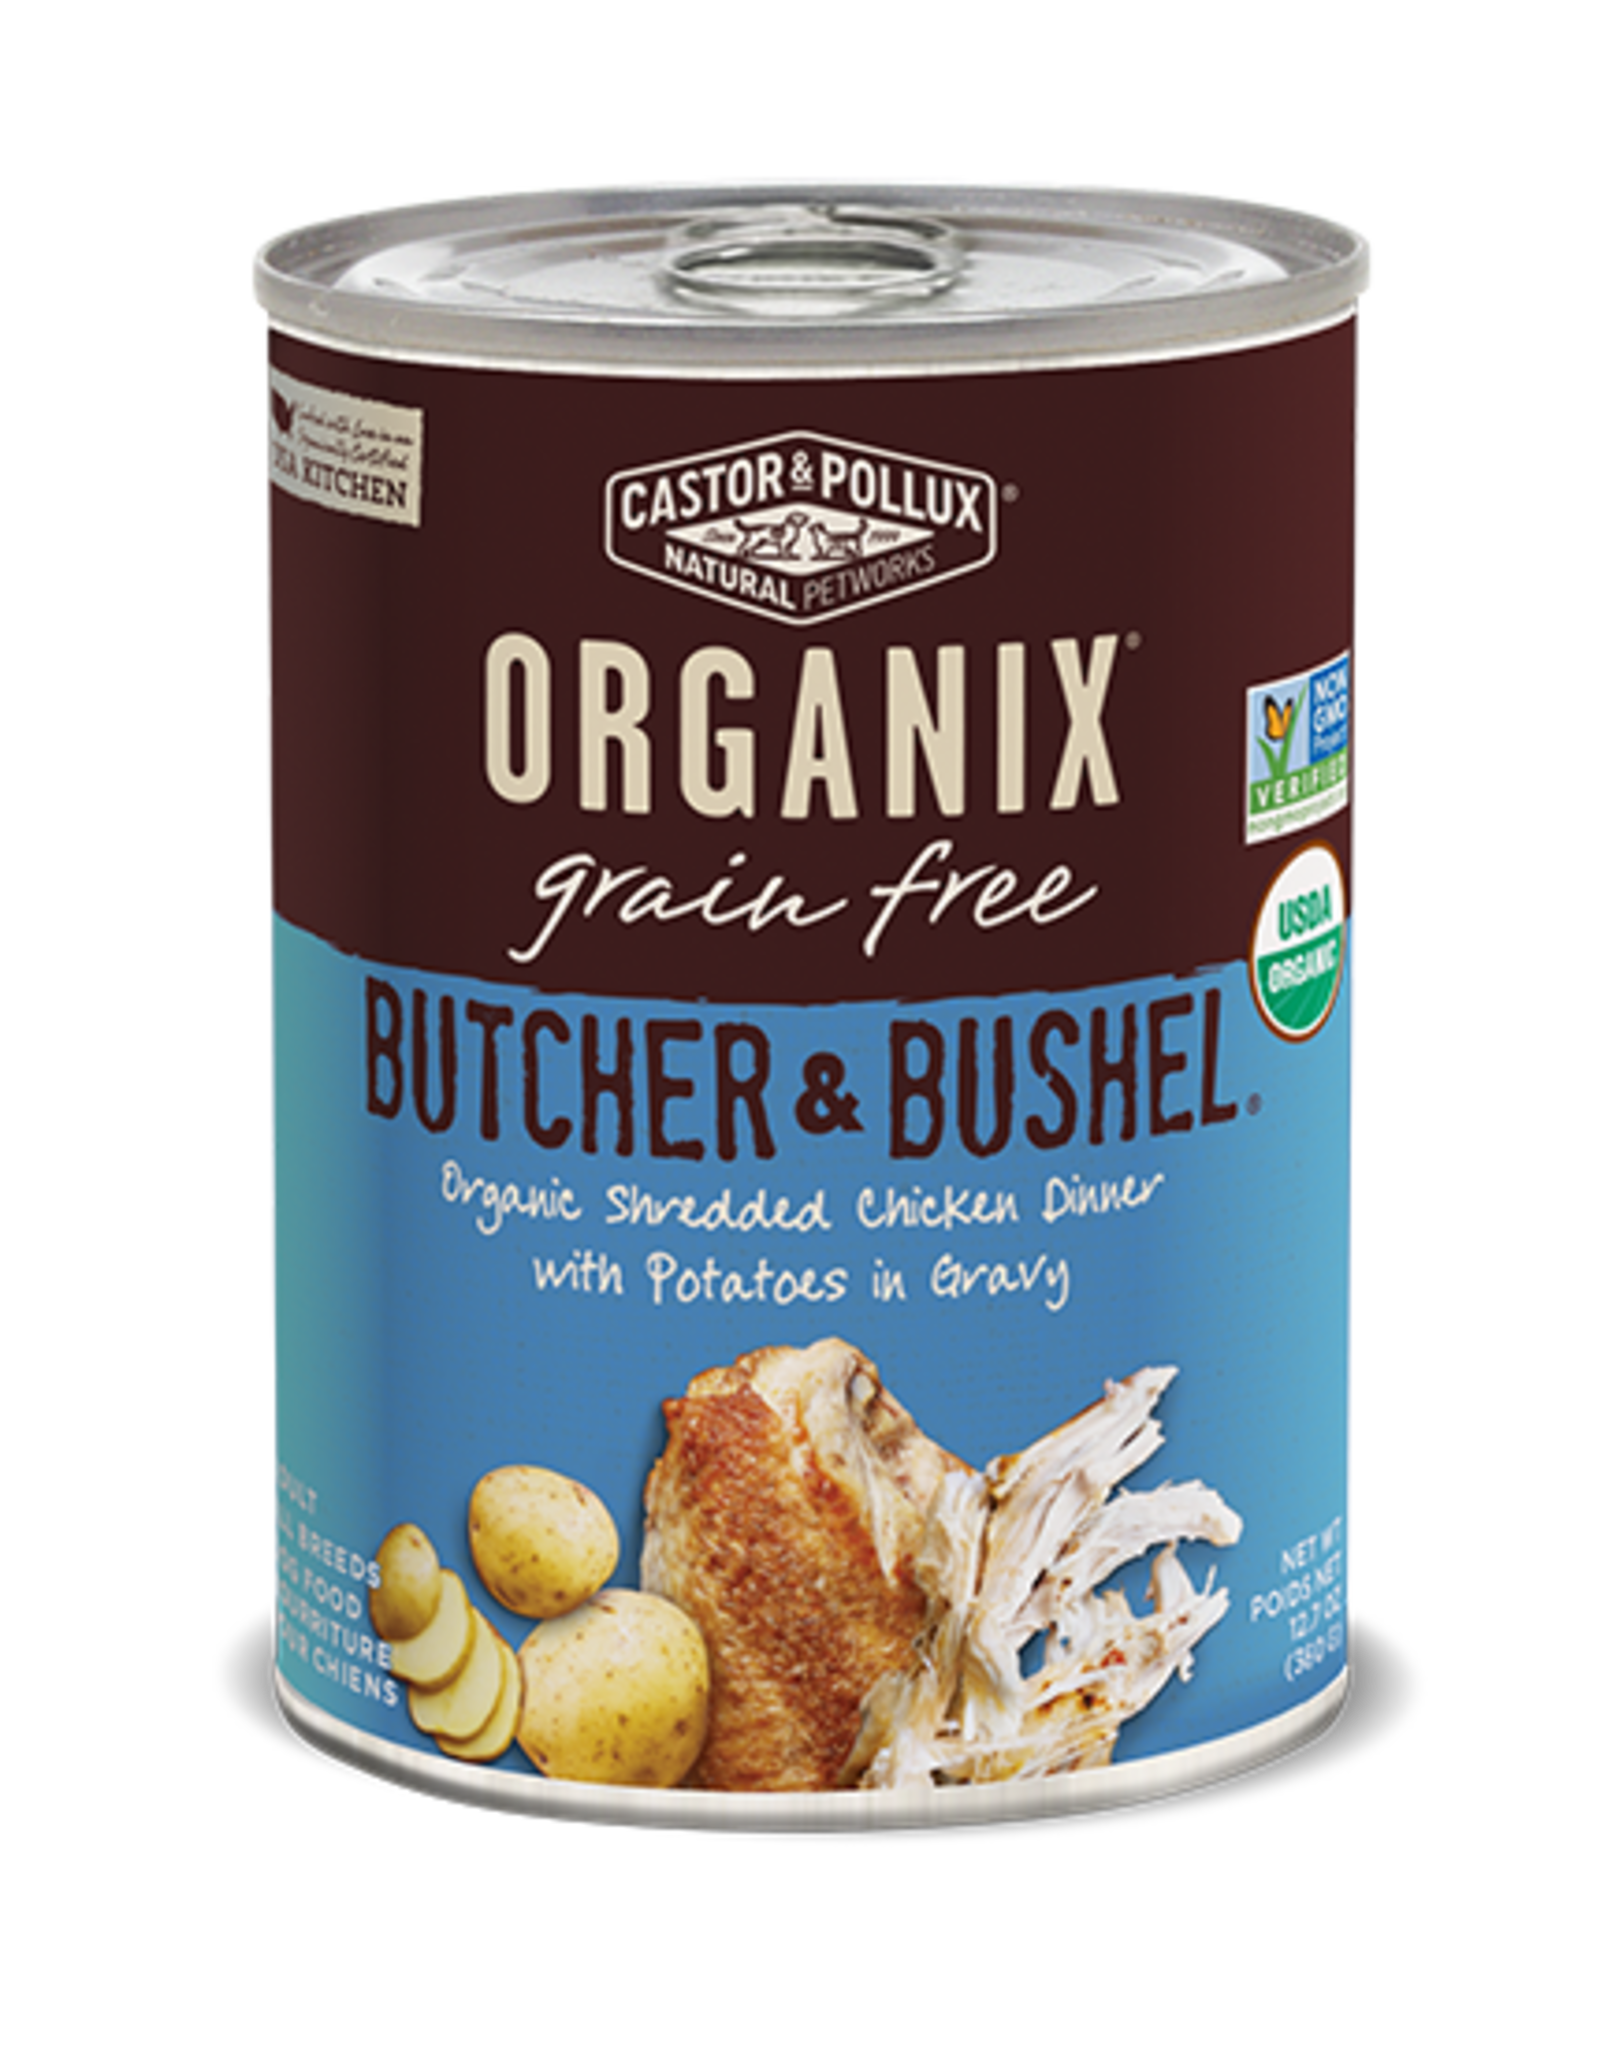 Castor & Pollux Castor & Pollux Organix Wet Dog Food Butcher & Bushel Organic Shredded Chicken Dinner With Potatoes In Gravy 12.7oz Can Grain Free